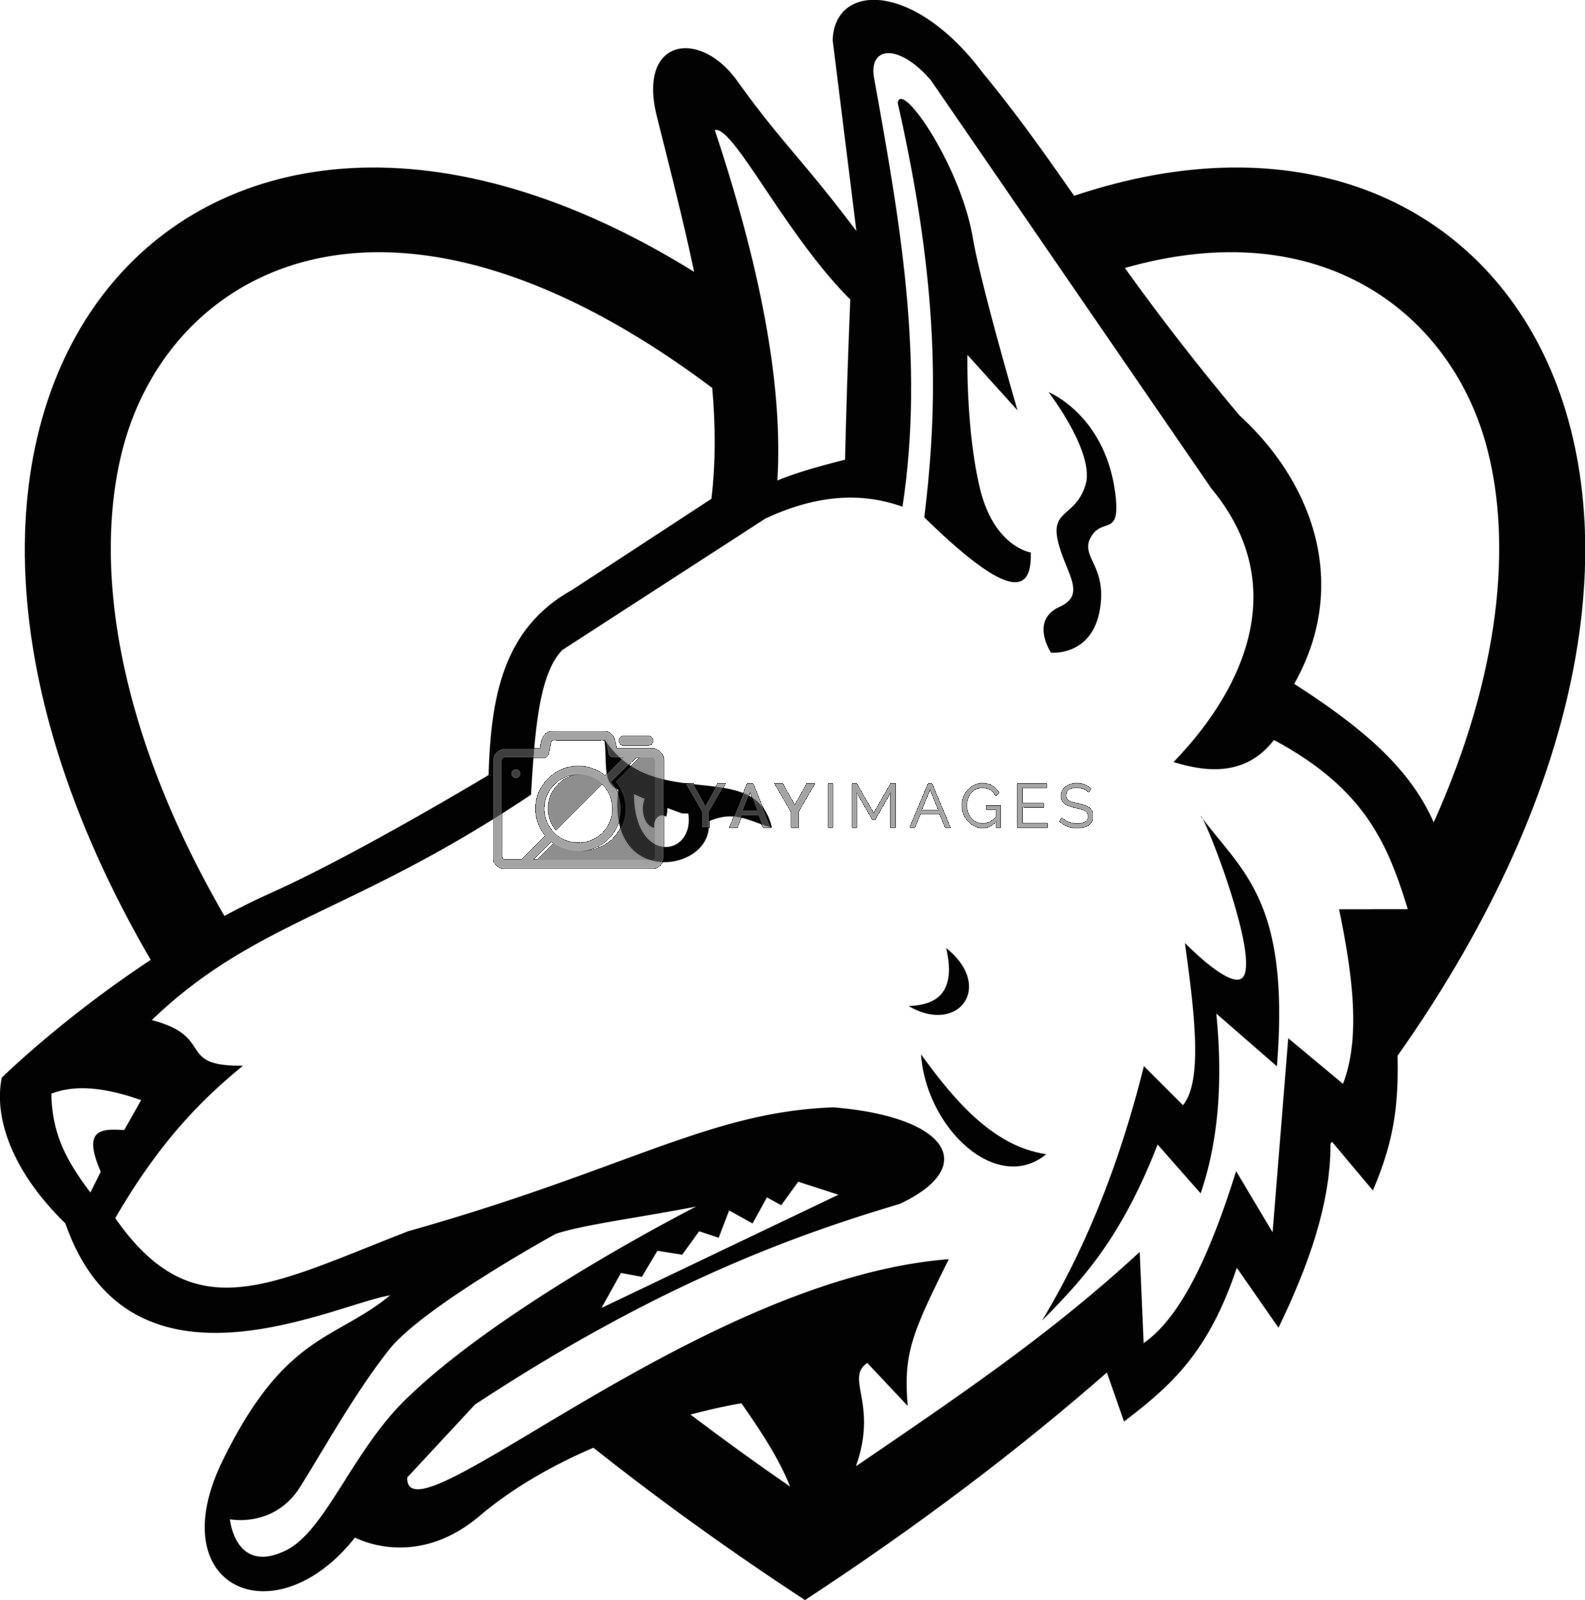 Black and white mascot illustration of head of a German Shepherd or Alsatian wolf dog set inside heart shape viewed from side on isolated background in retro style.